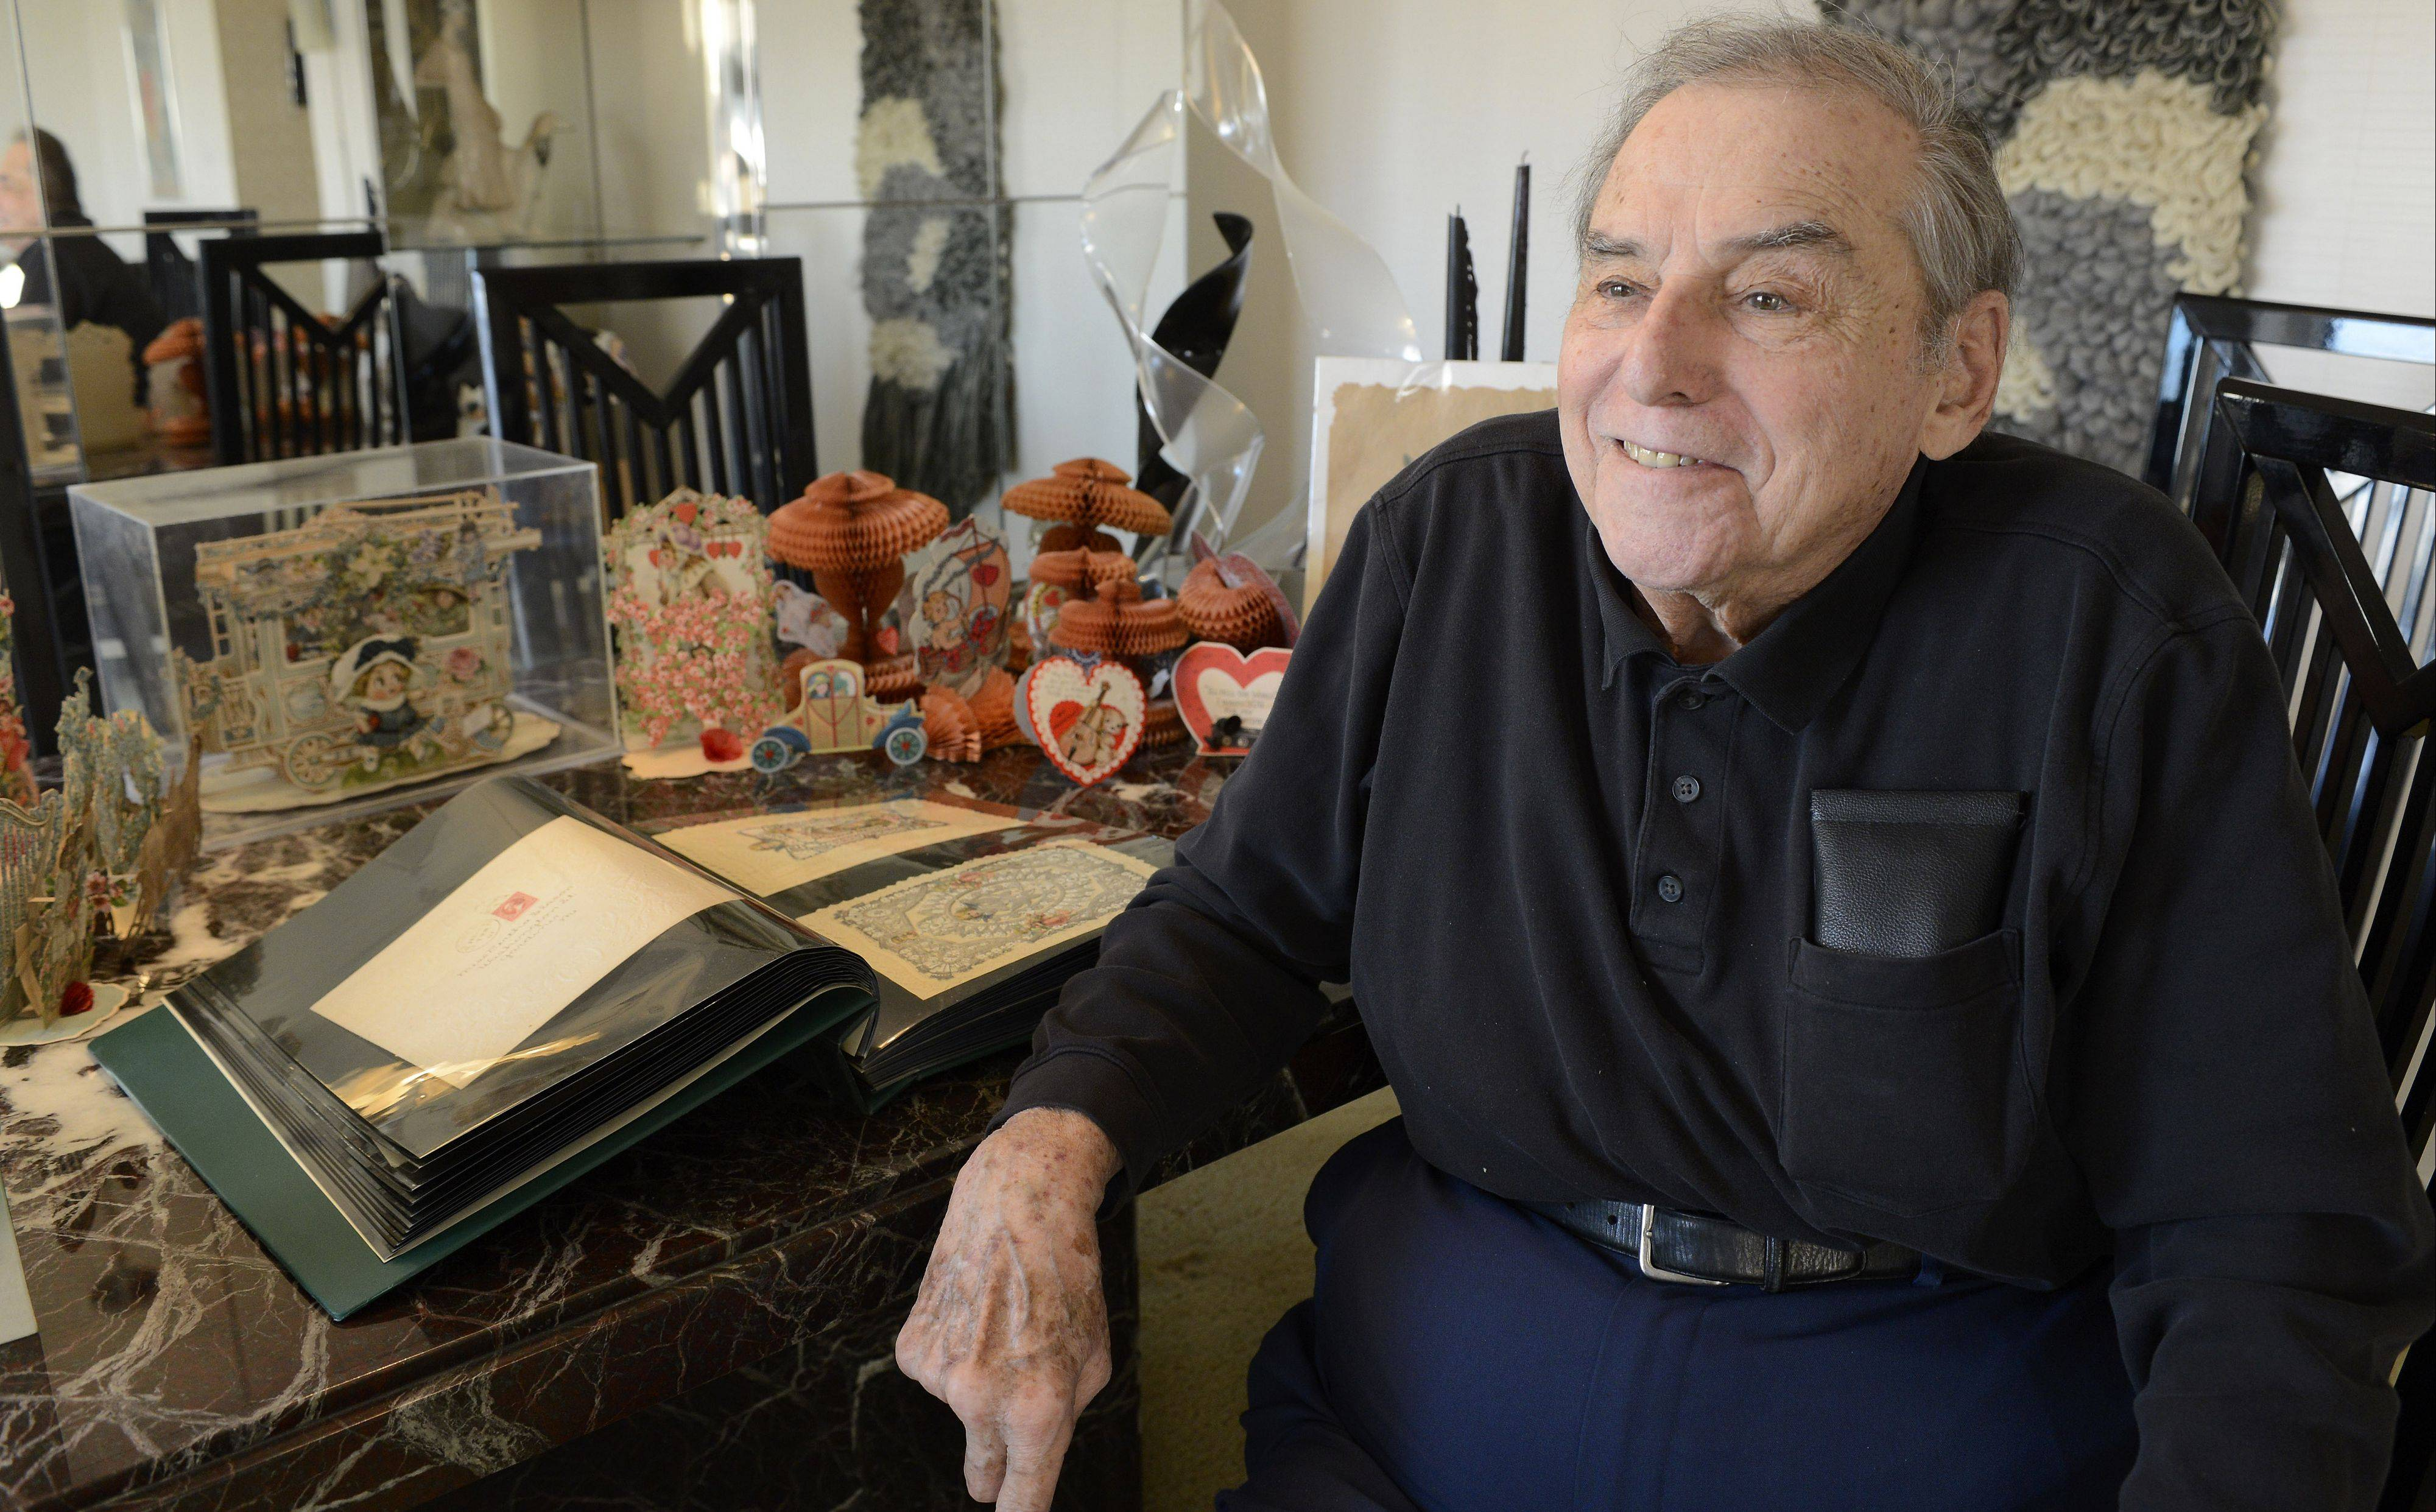 Known for advocating for change on social issues, 81-year-old Lloyd Levin looks to the past when it comes to Valentine's Day. His antique card collection features some true works of art.